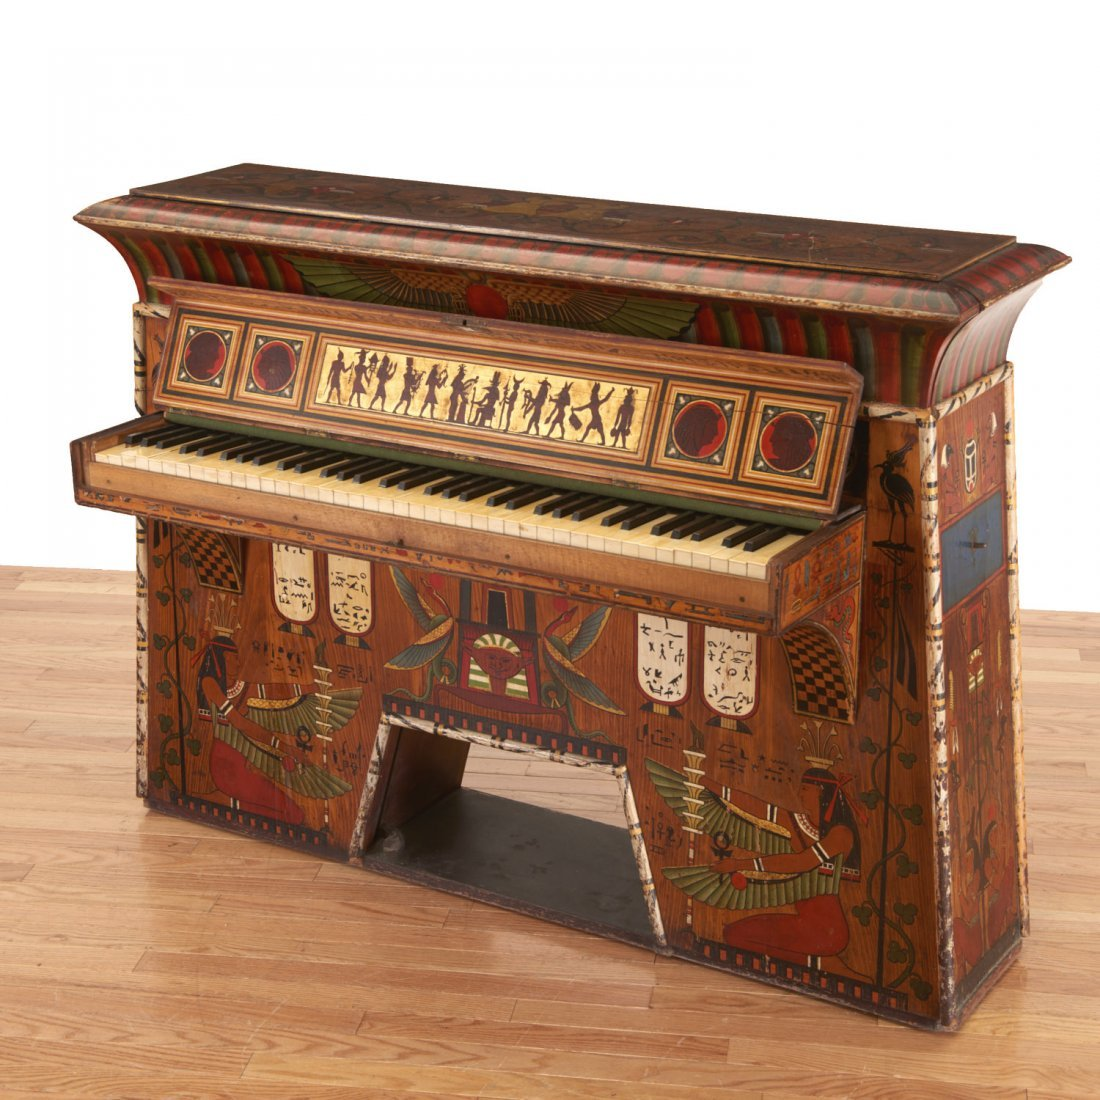 Egyptian Revival spinet piano - 4